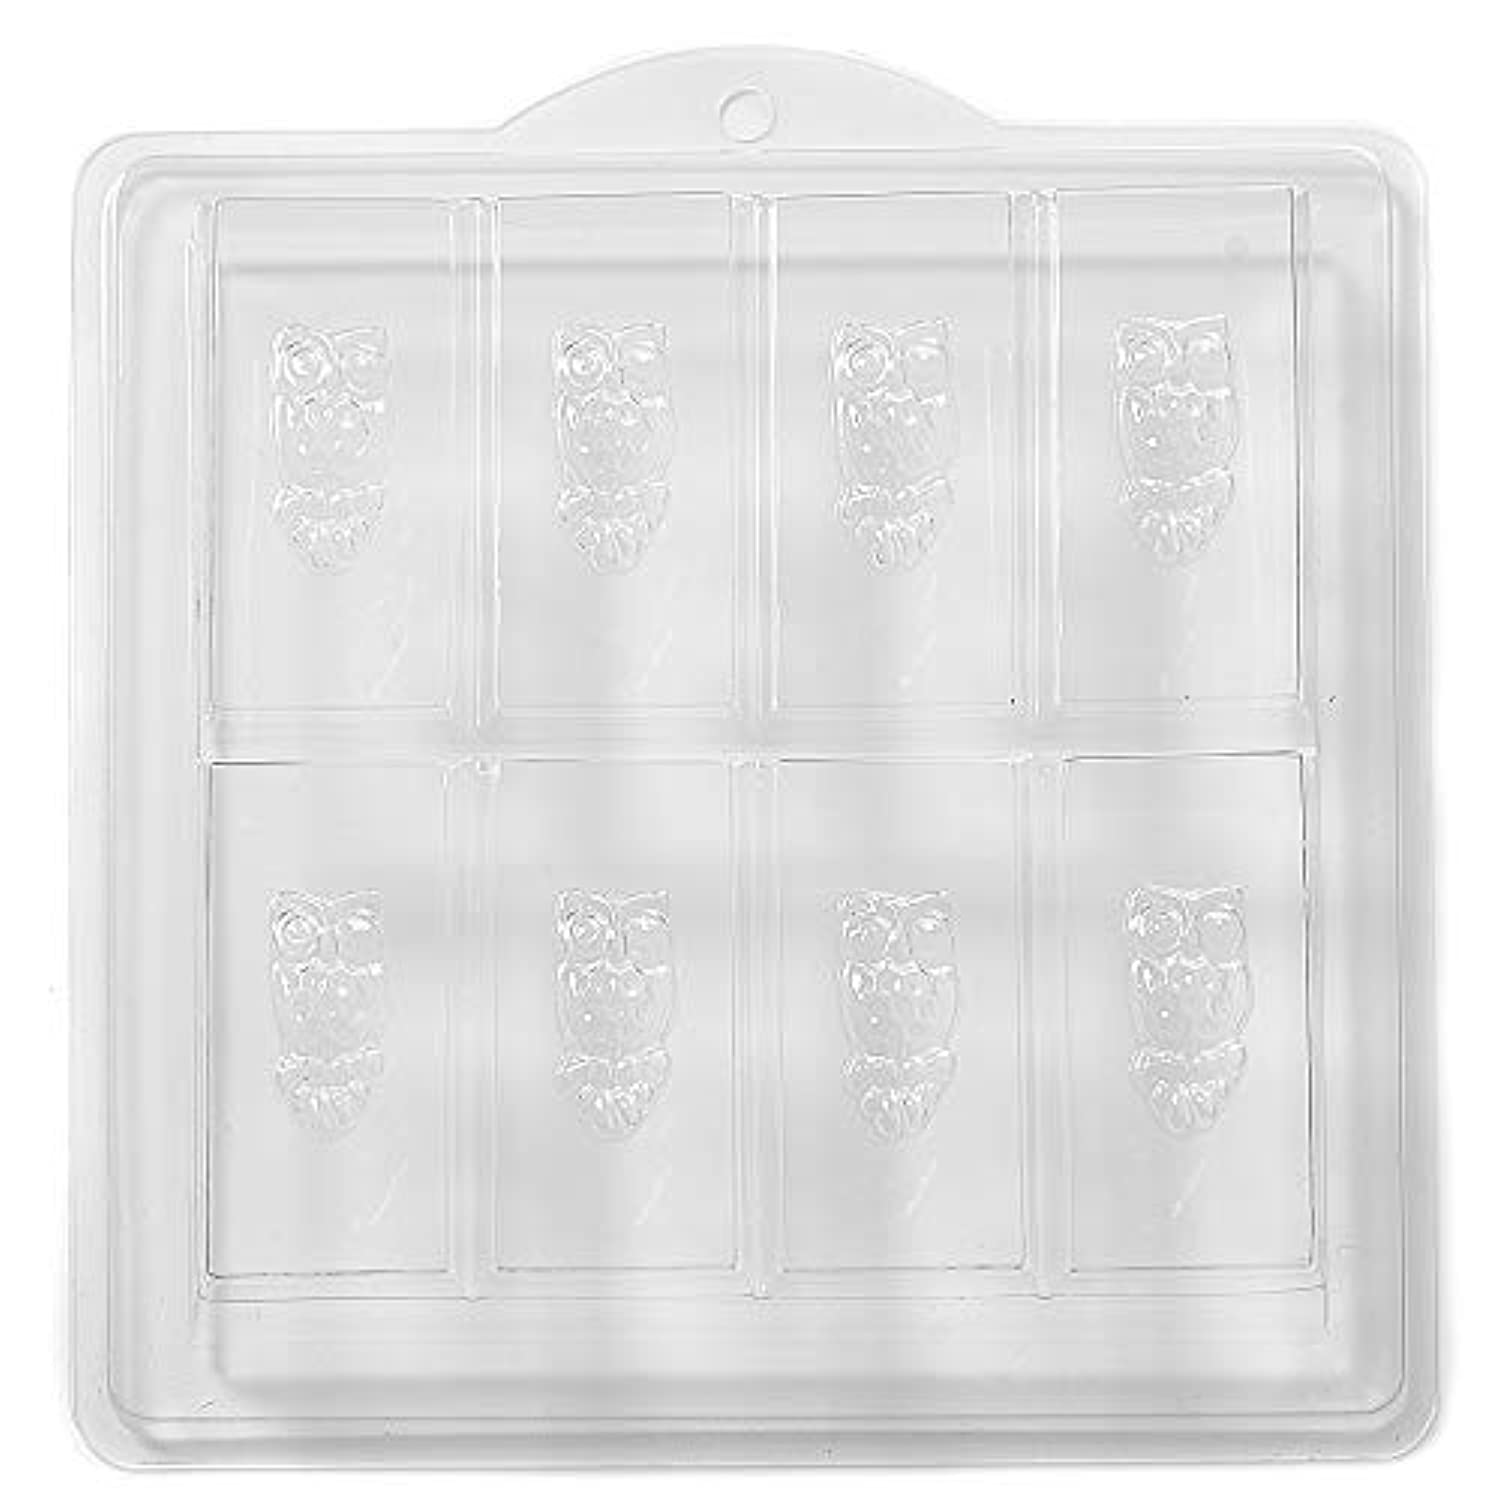 8 Cavity Owl Embossed On Rectangle Soap/Bath Bomb Mould Mold H02 x 5